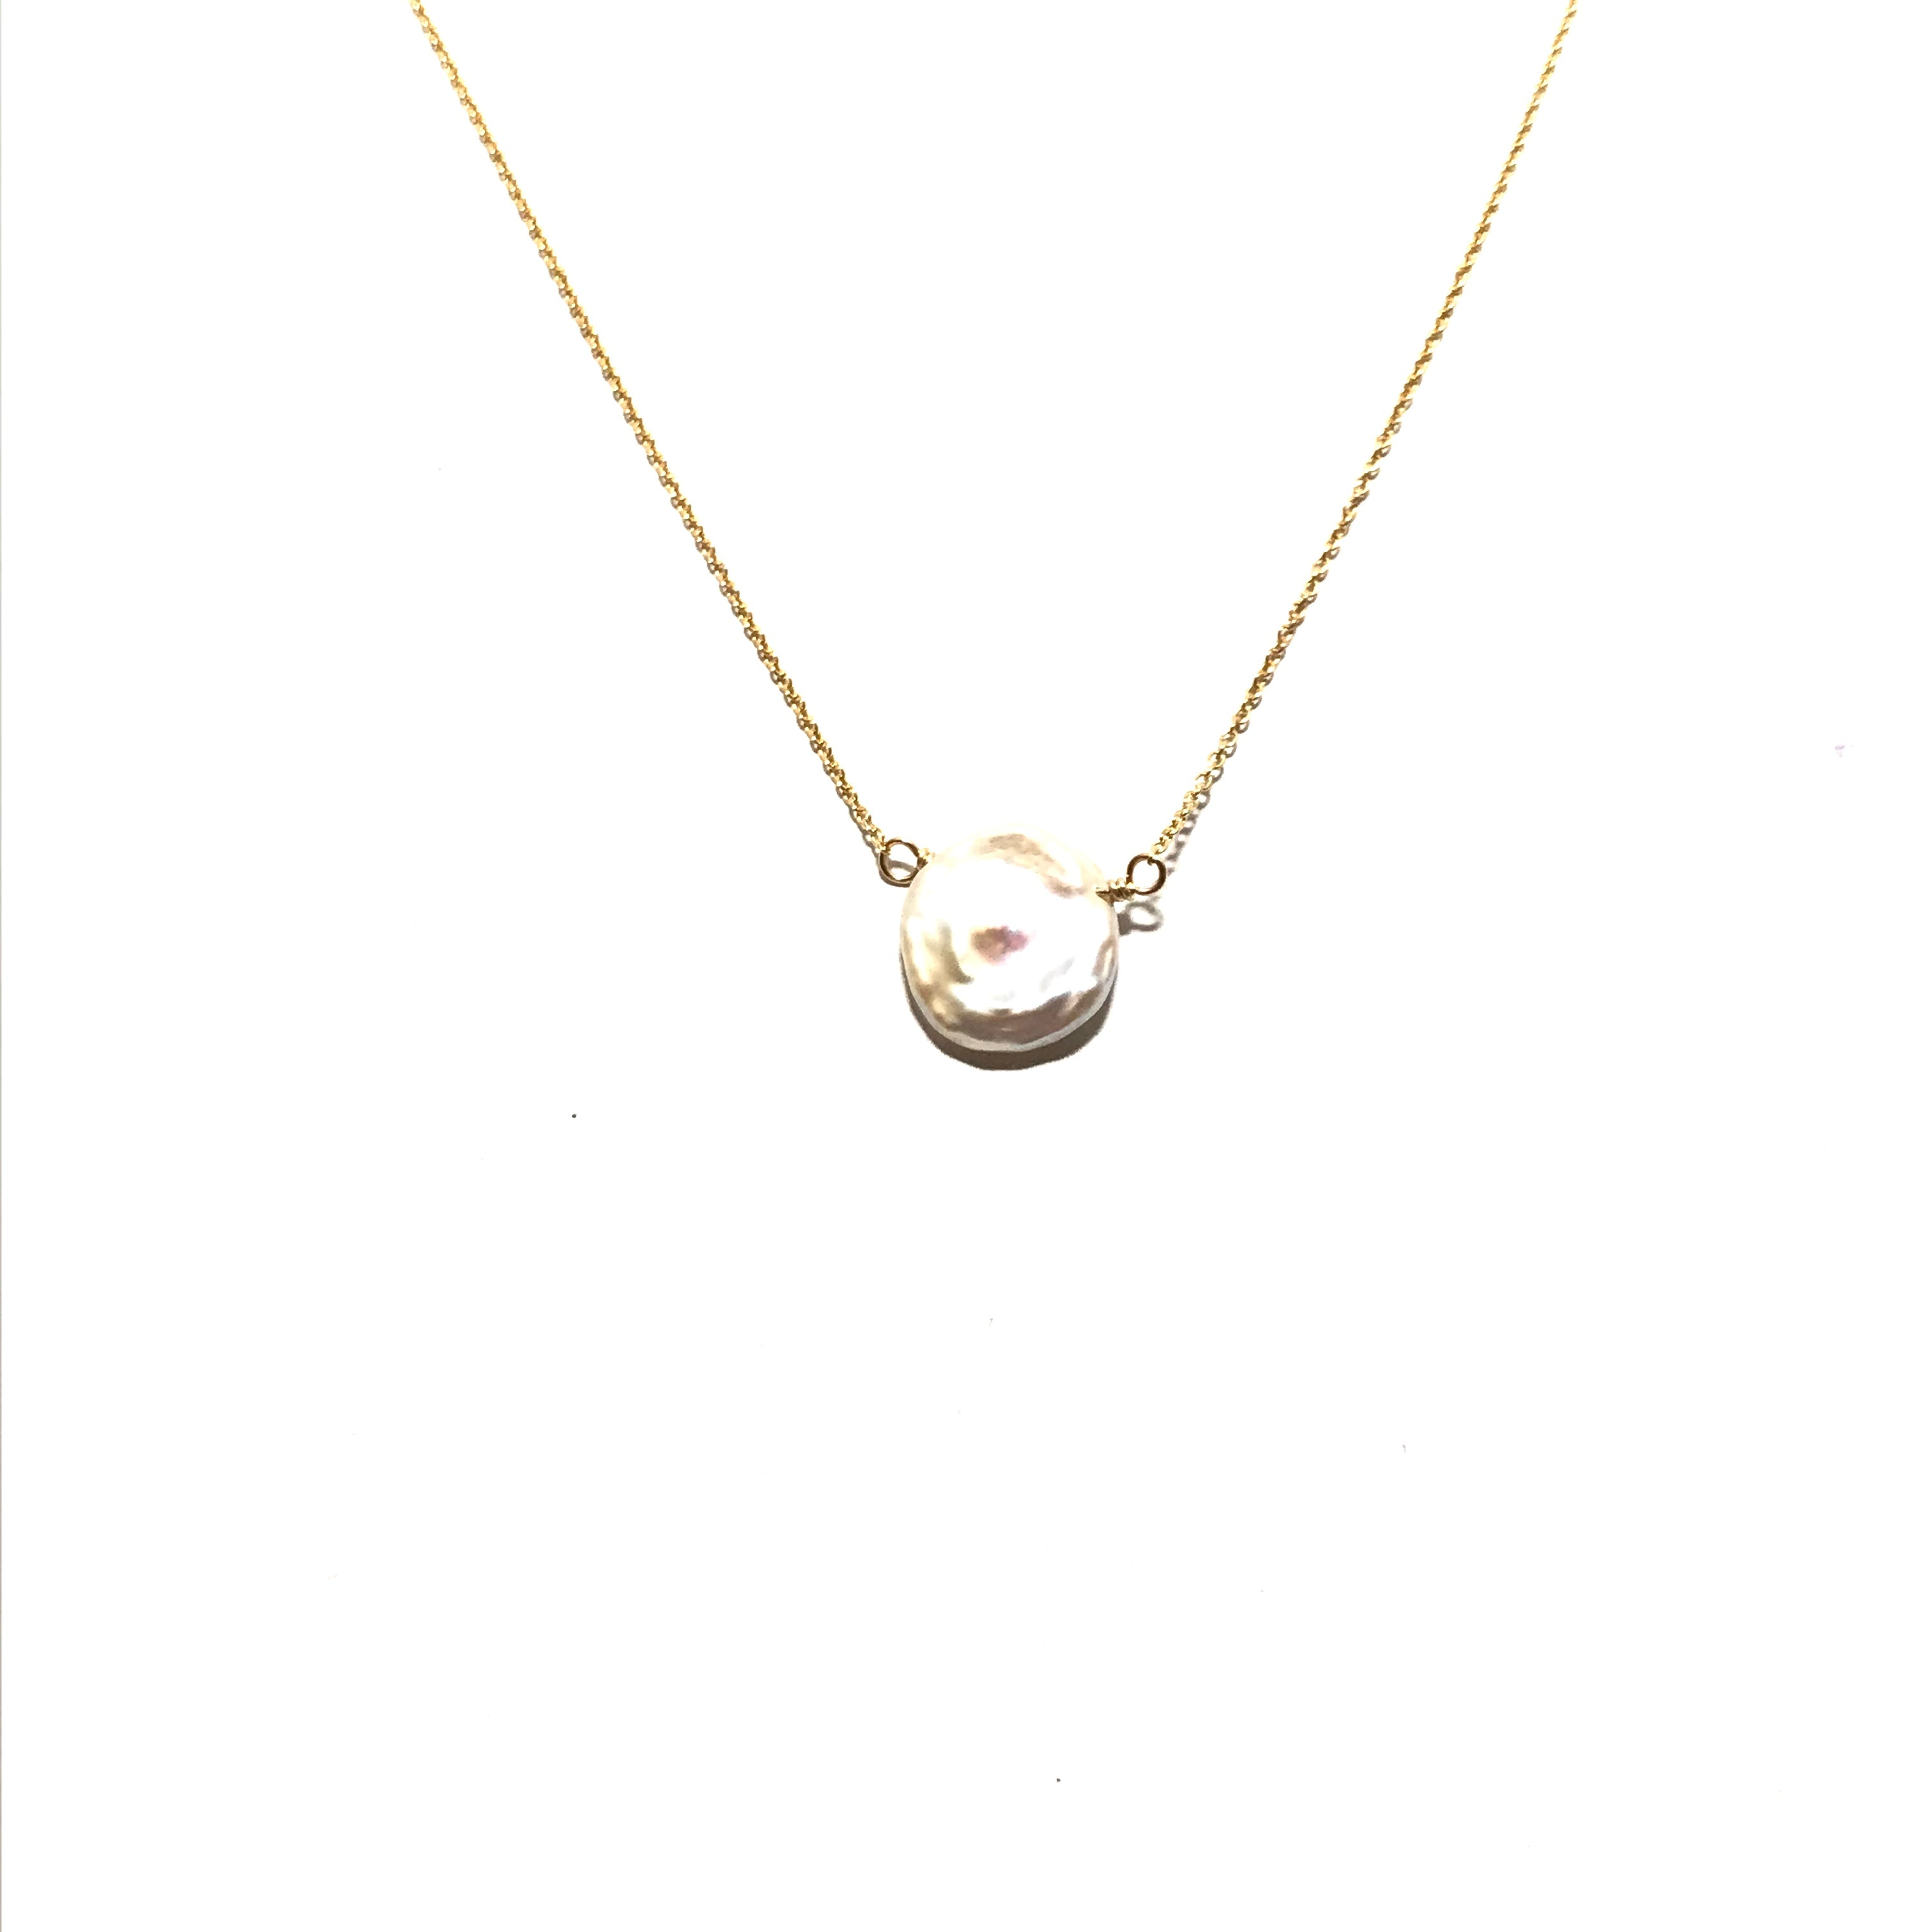 Karen Haas White Baroque Coin Pearl Necklace